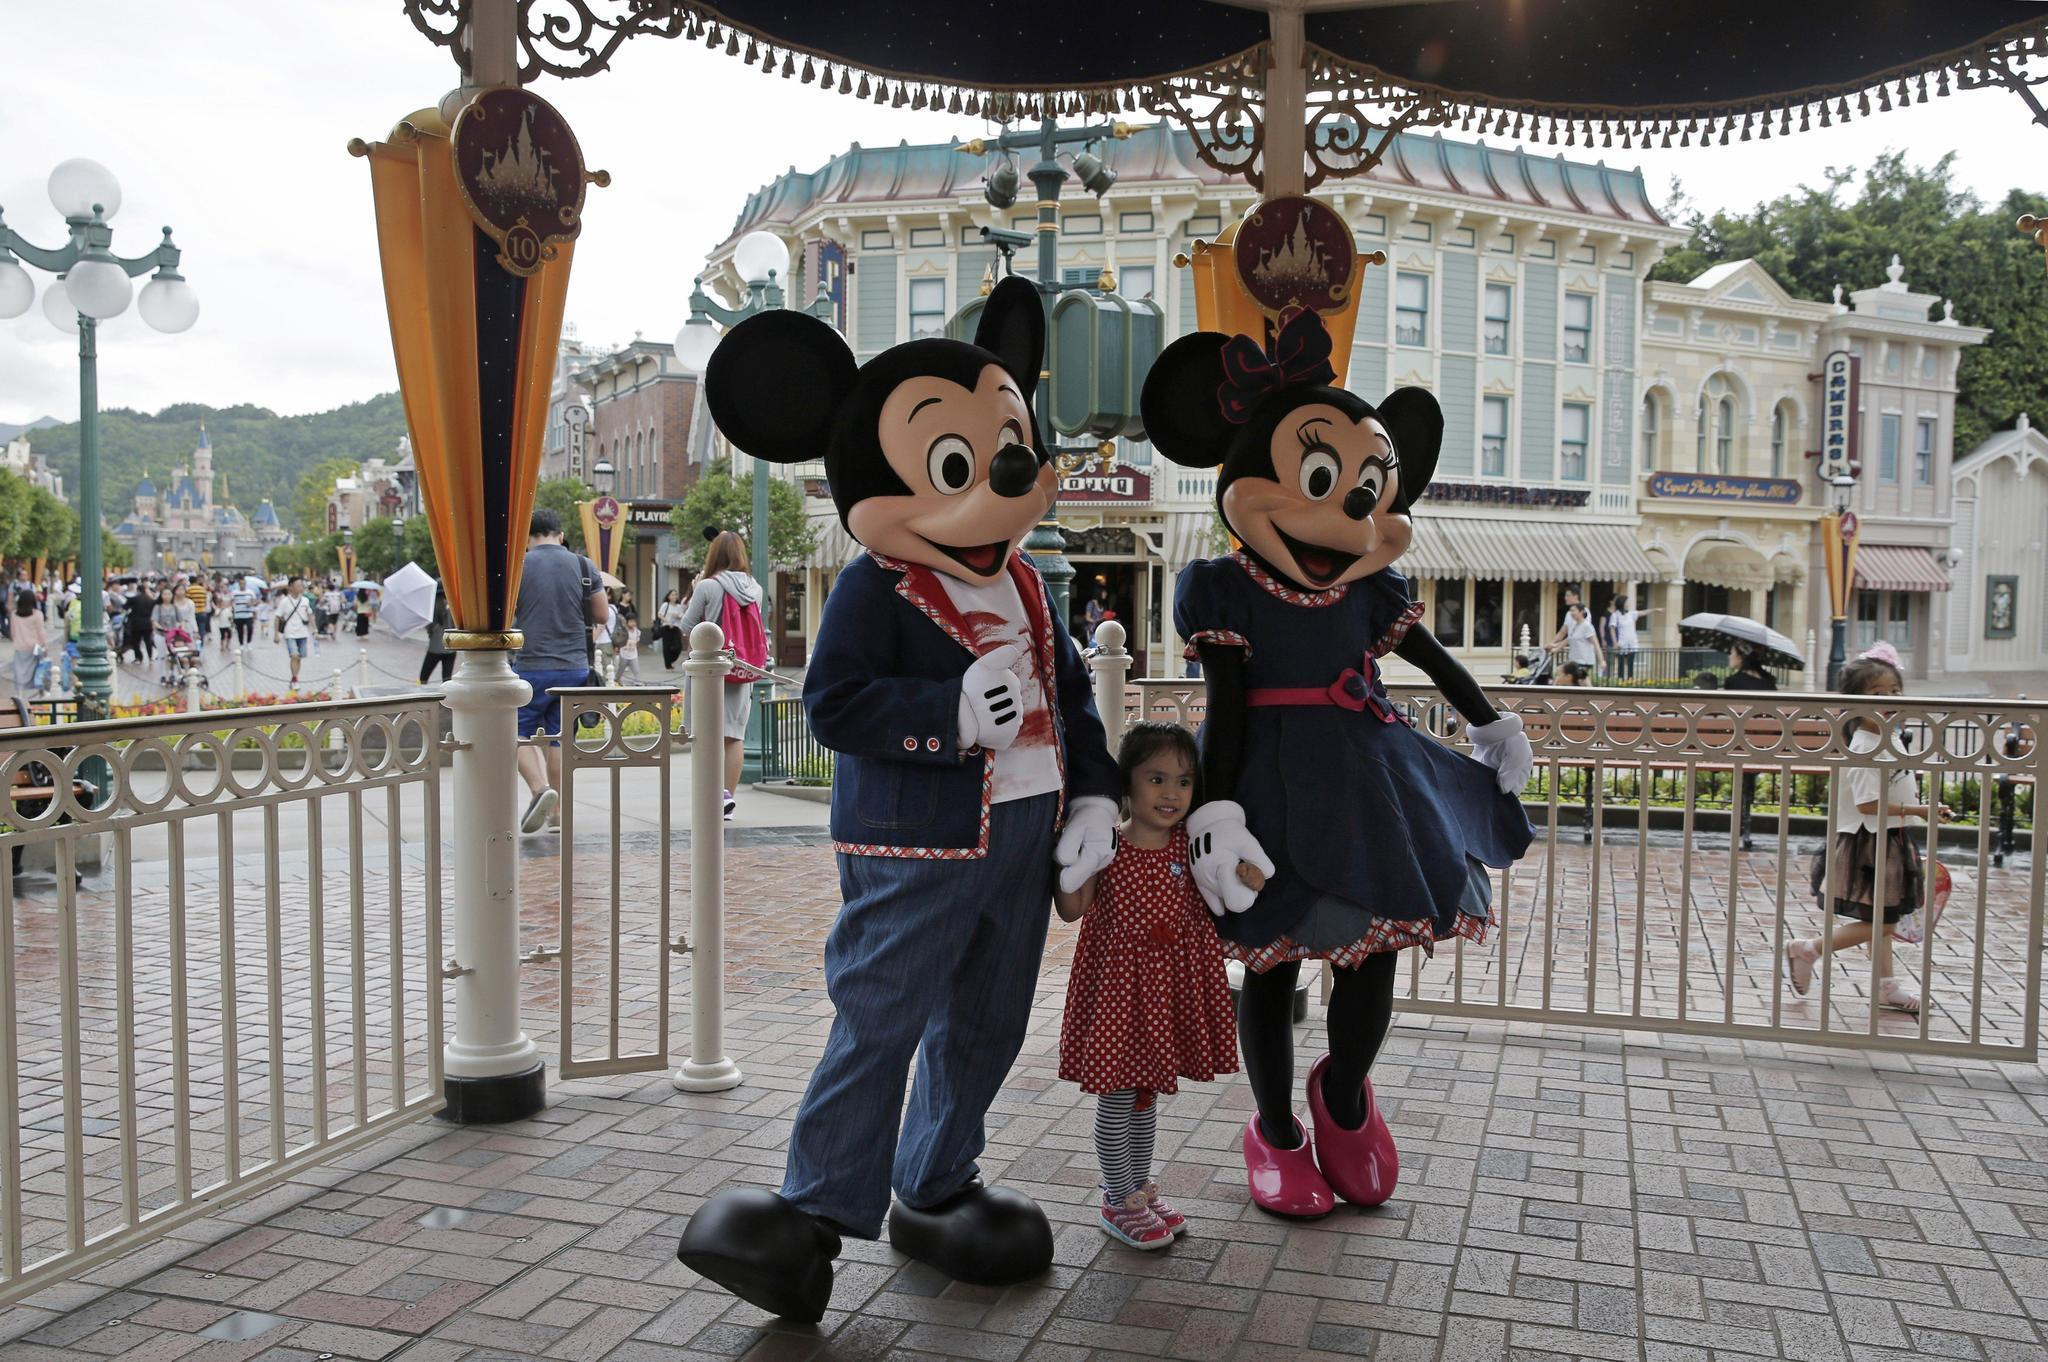 Hong Kong Disneyland To Expand Corporate Business At Andretti Polygo Minie Mouse By Sentinel Orlando